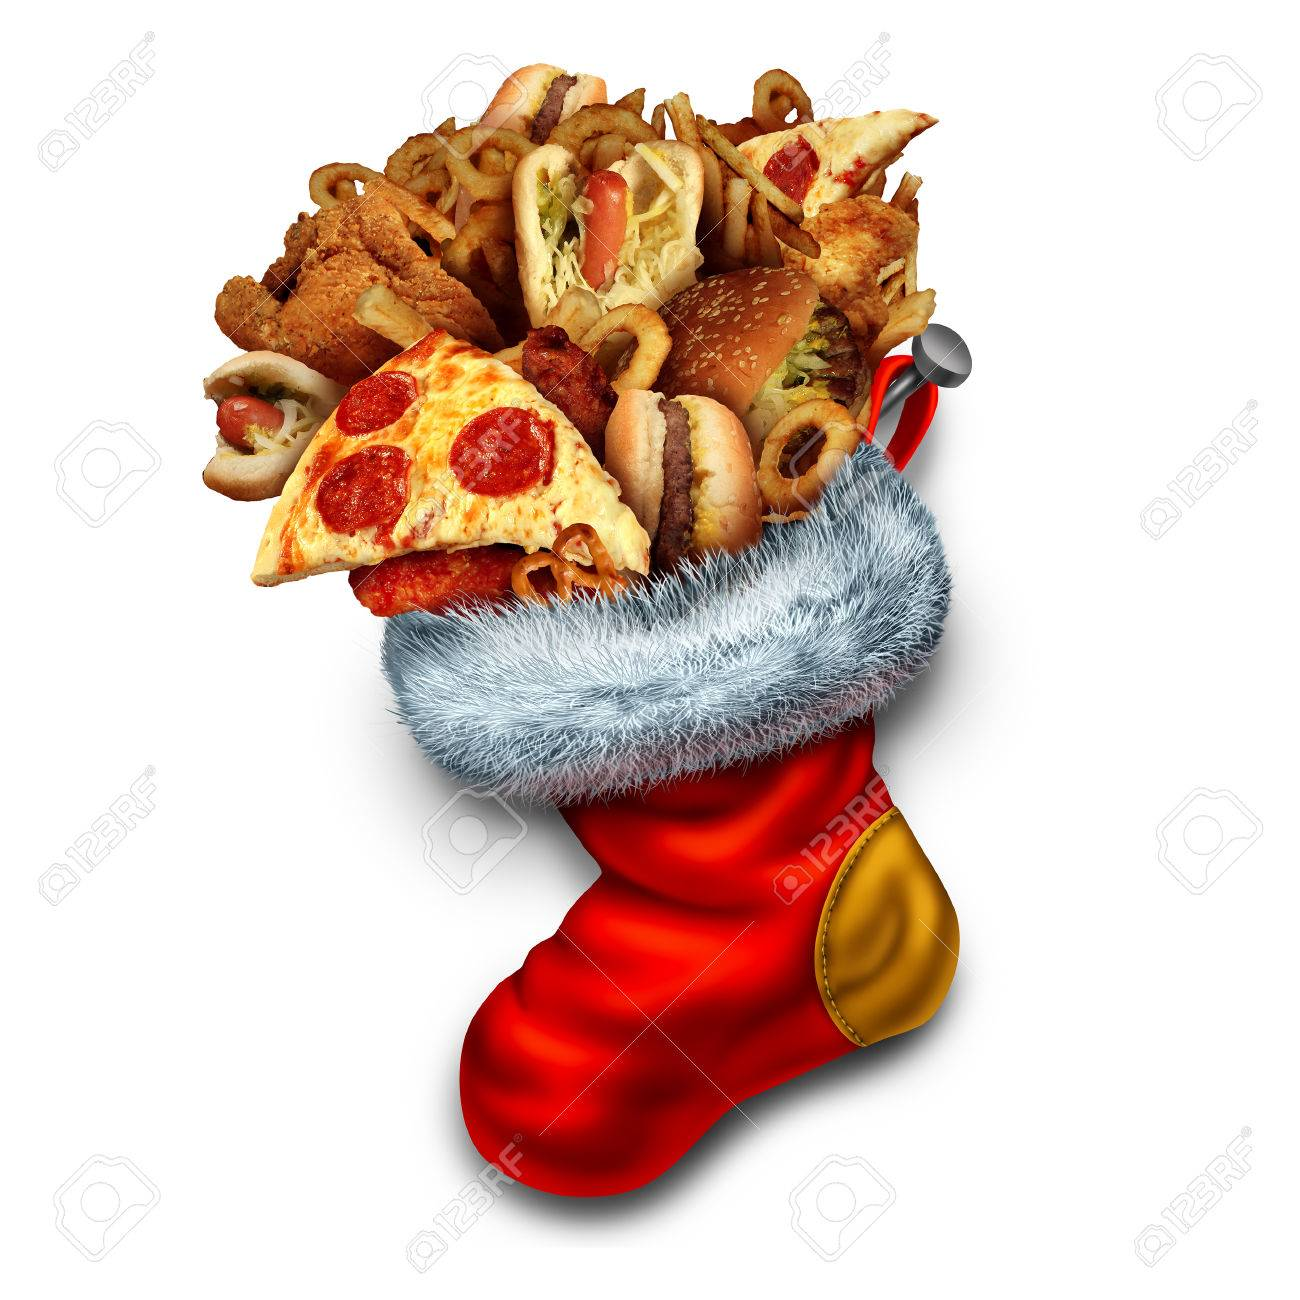 Unhealthy Holiday Eating Symbol As A Group Of Greasy Fast Food